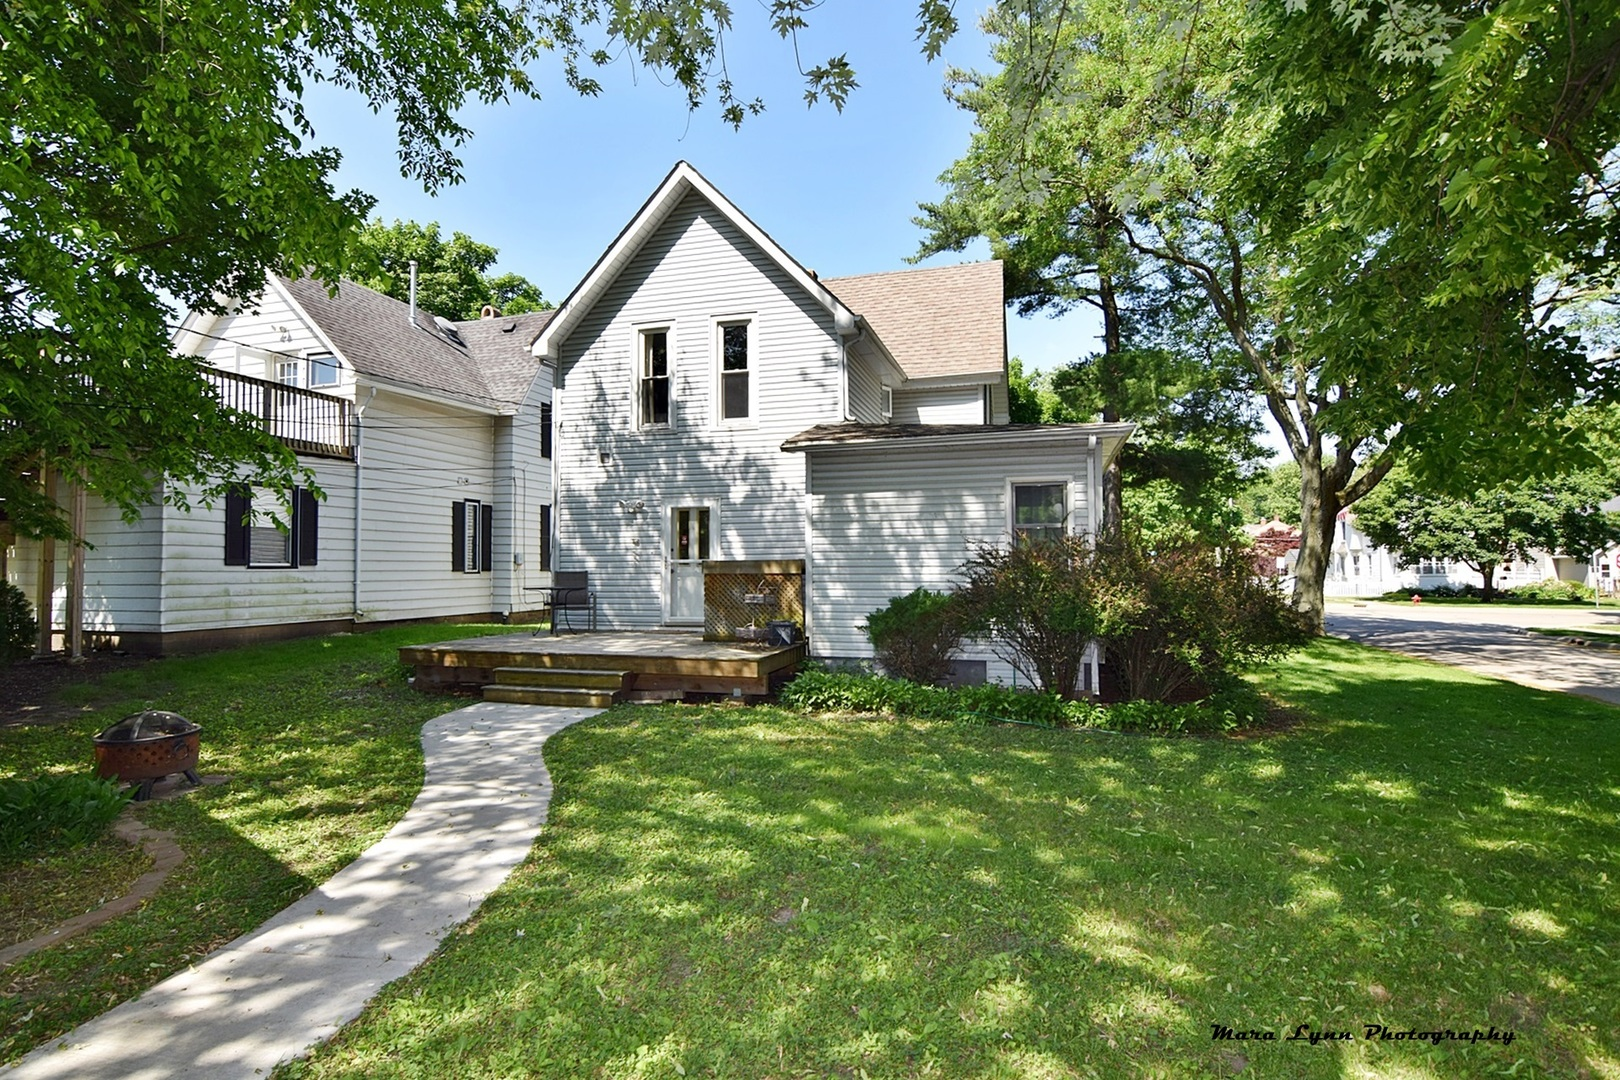 1002 South 3rd, ST. CHARLES, Illinois, 60174